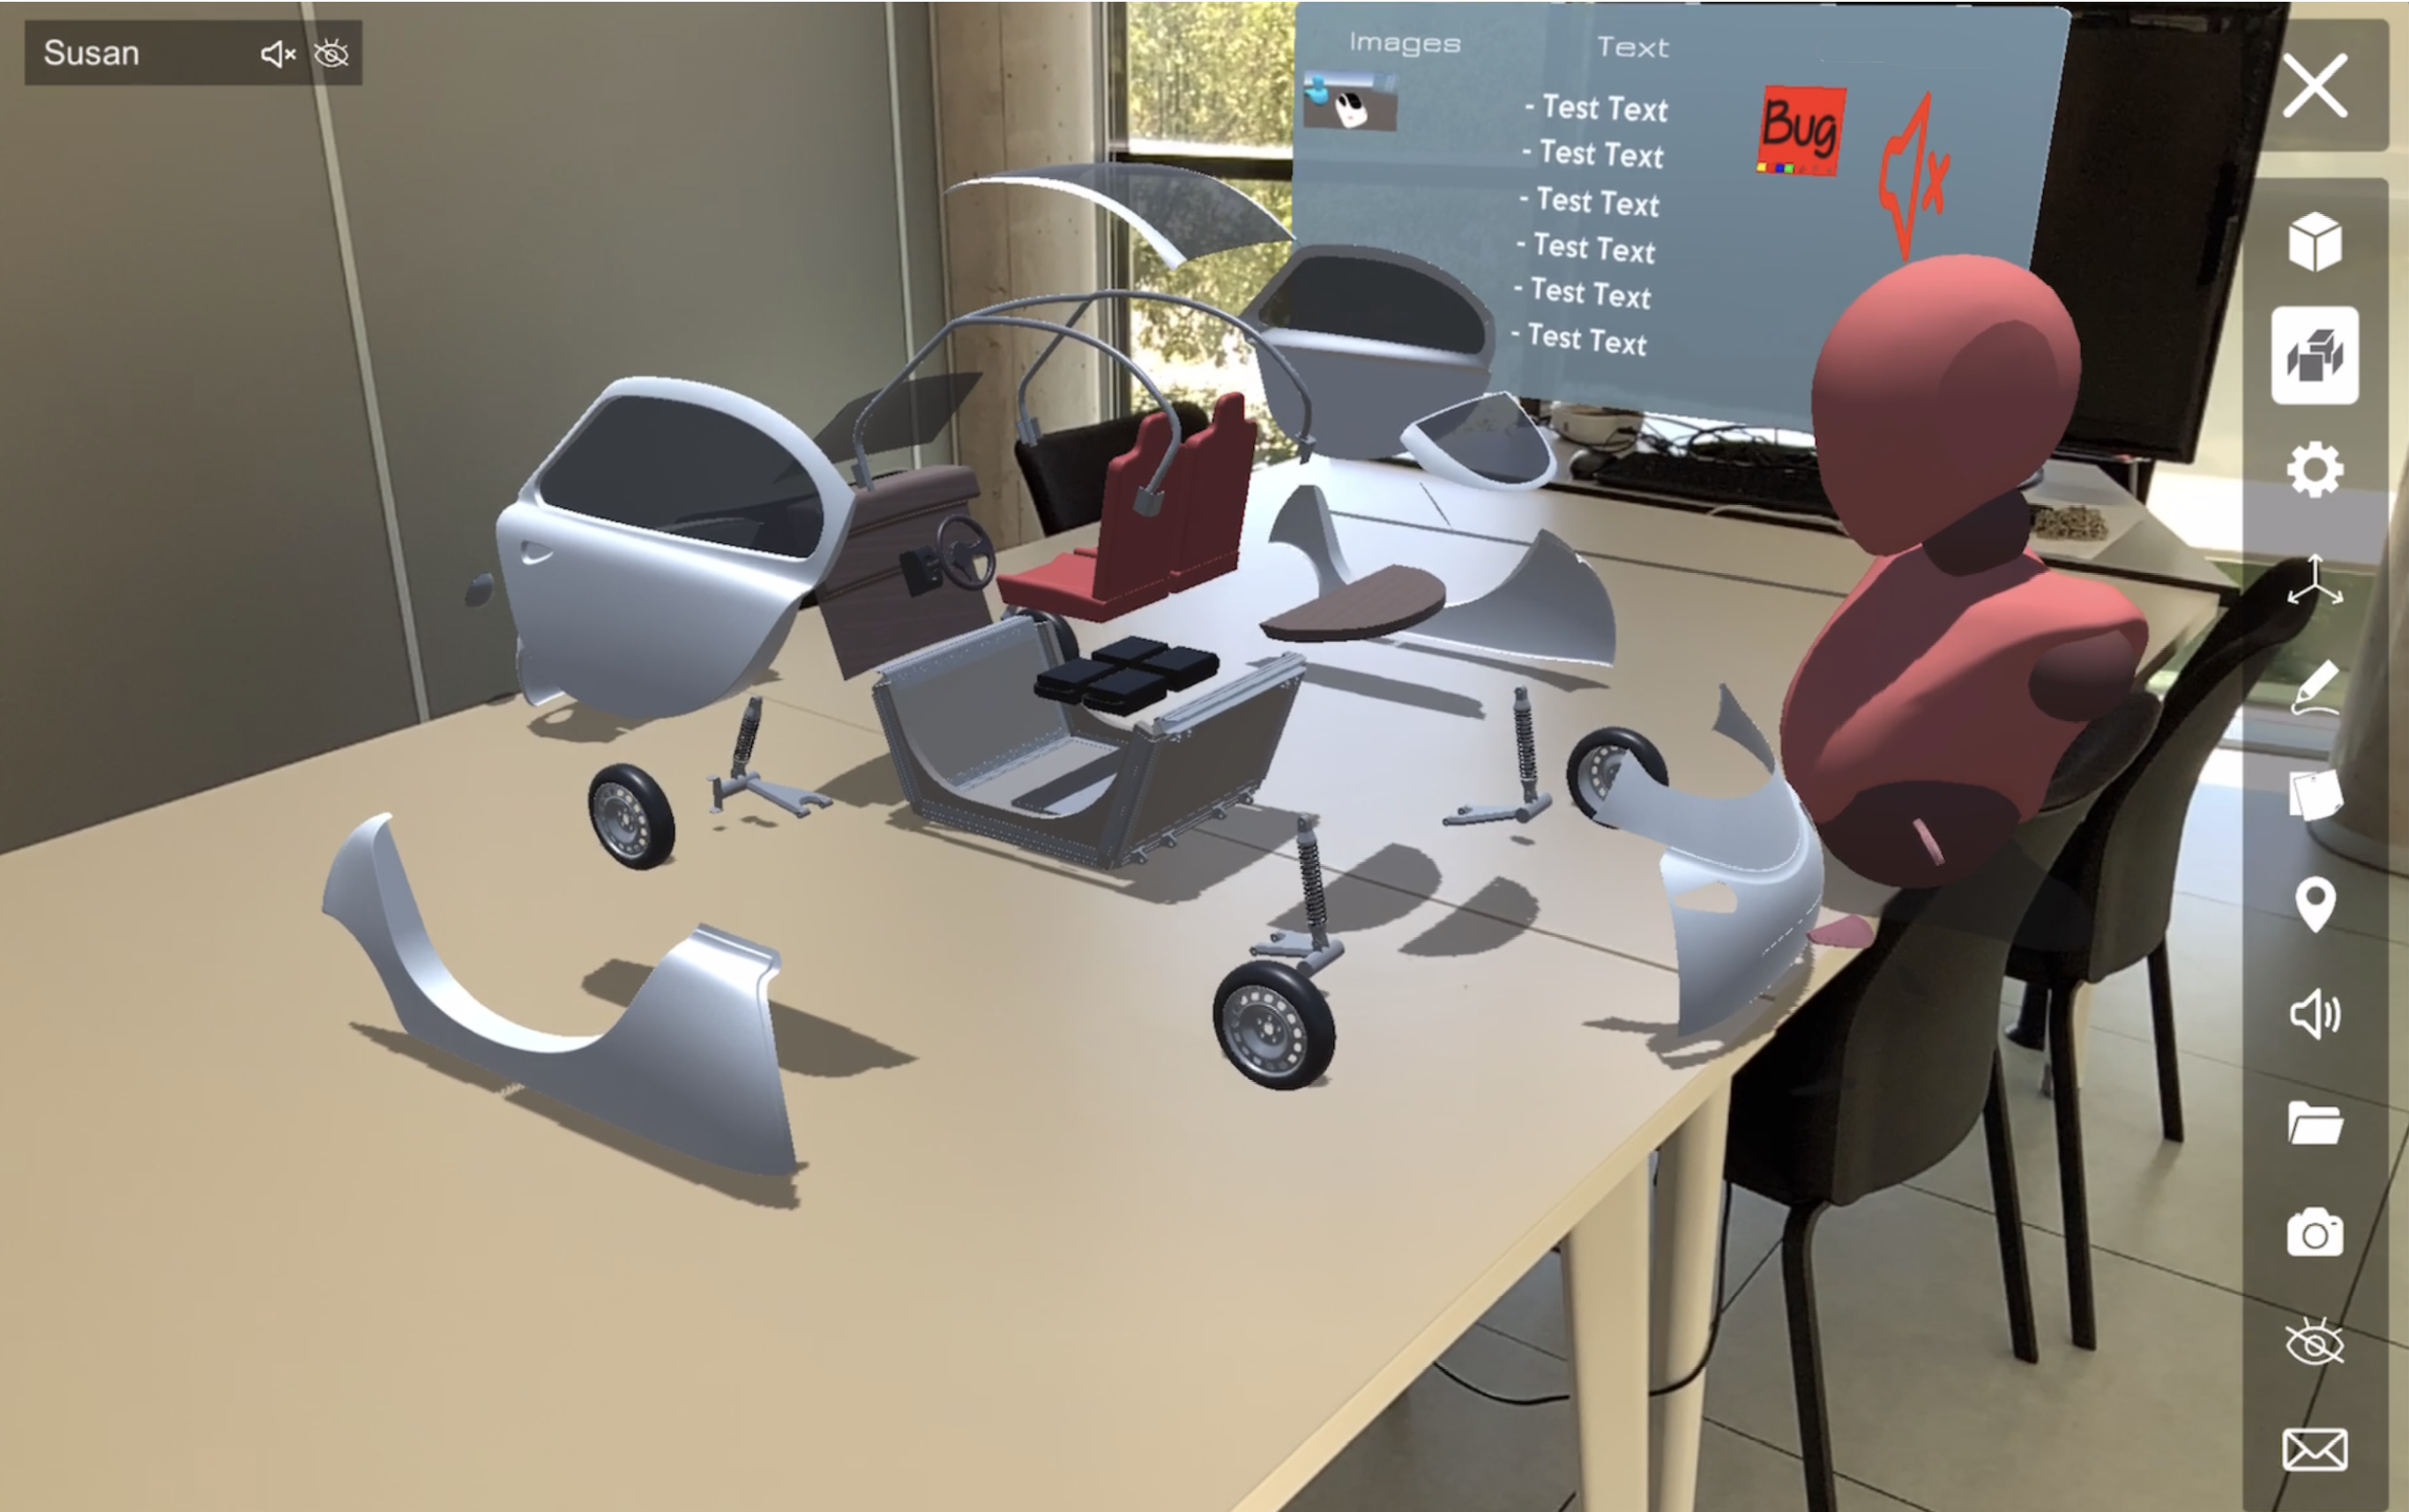 CT launches a virtual meeting room application capable of sharing 3D information